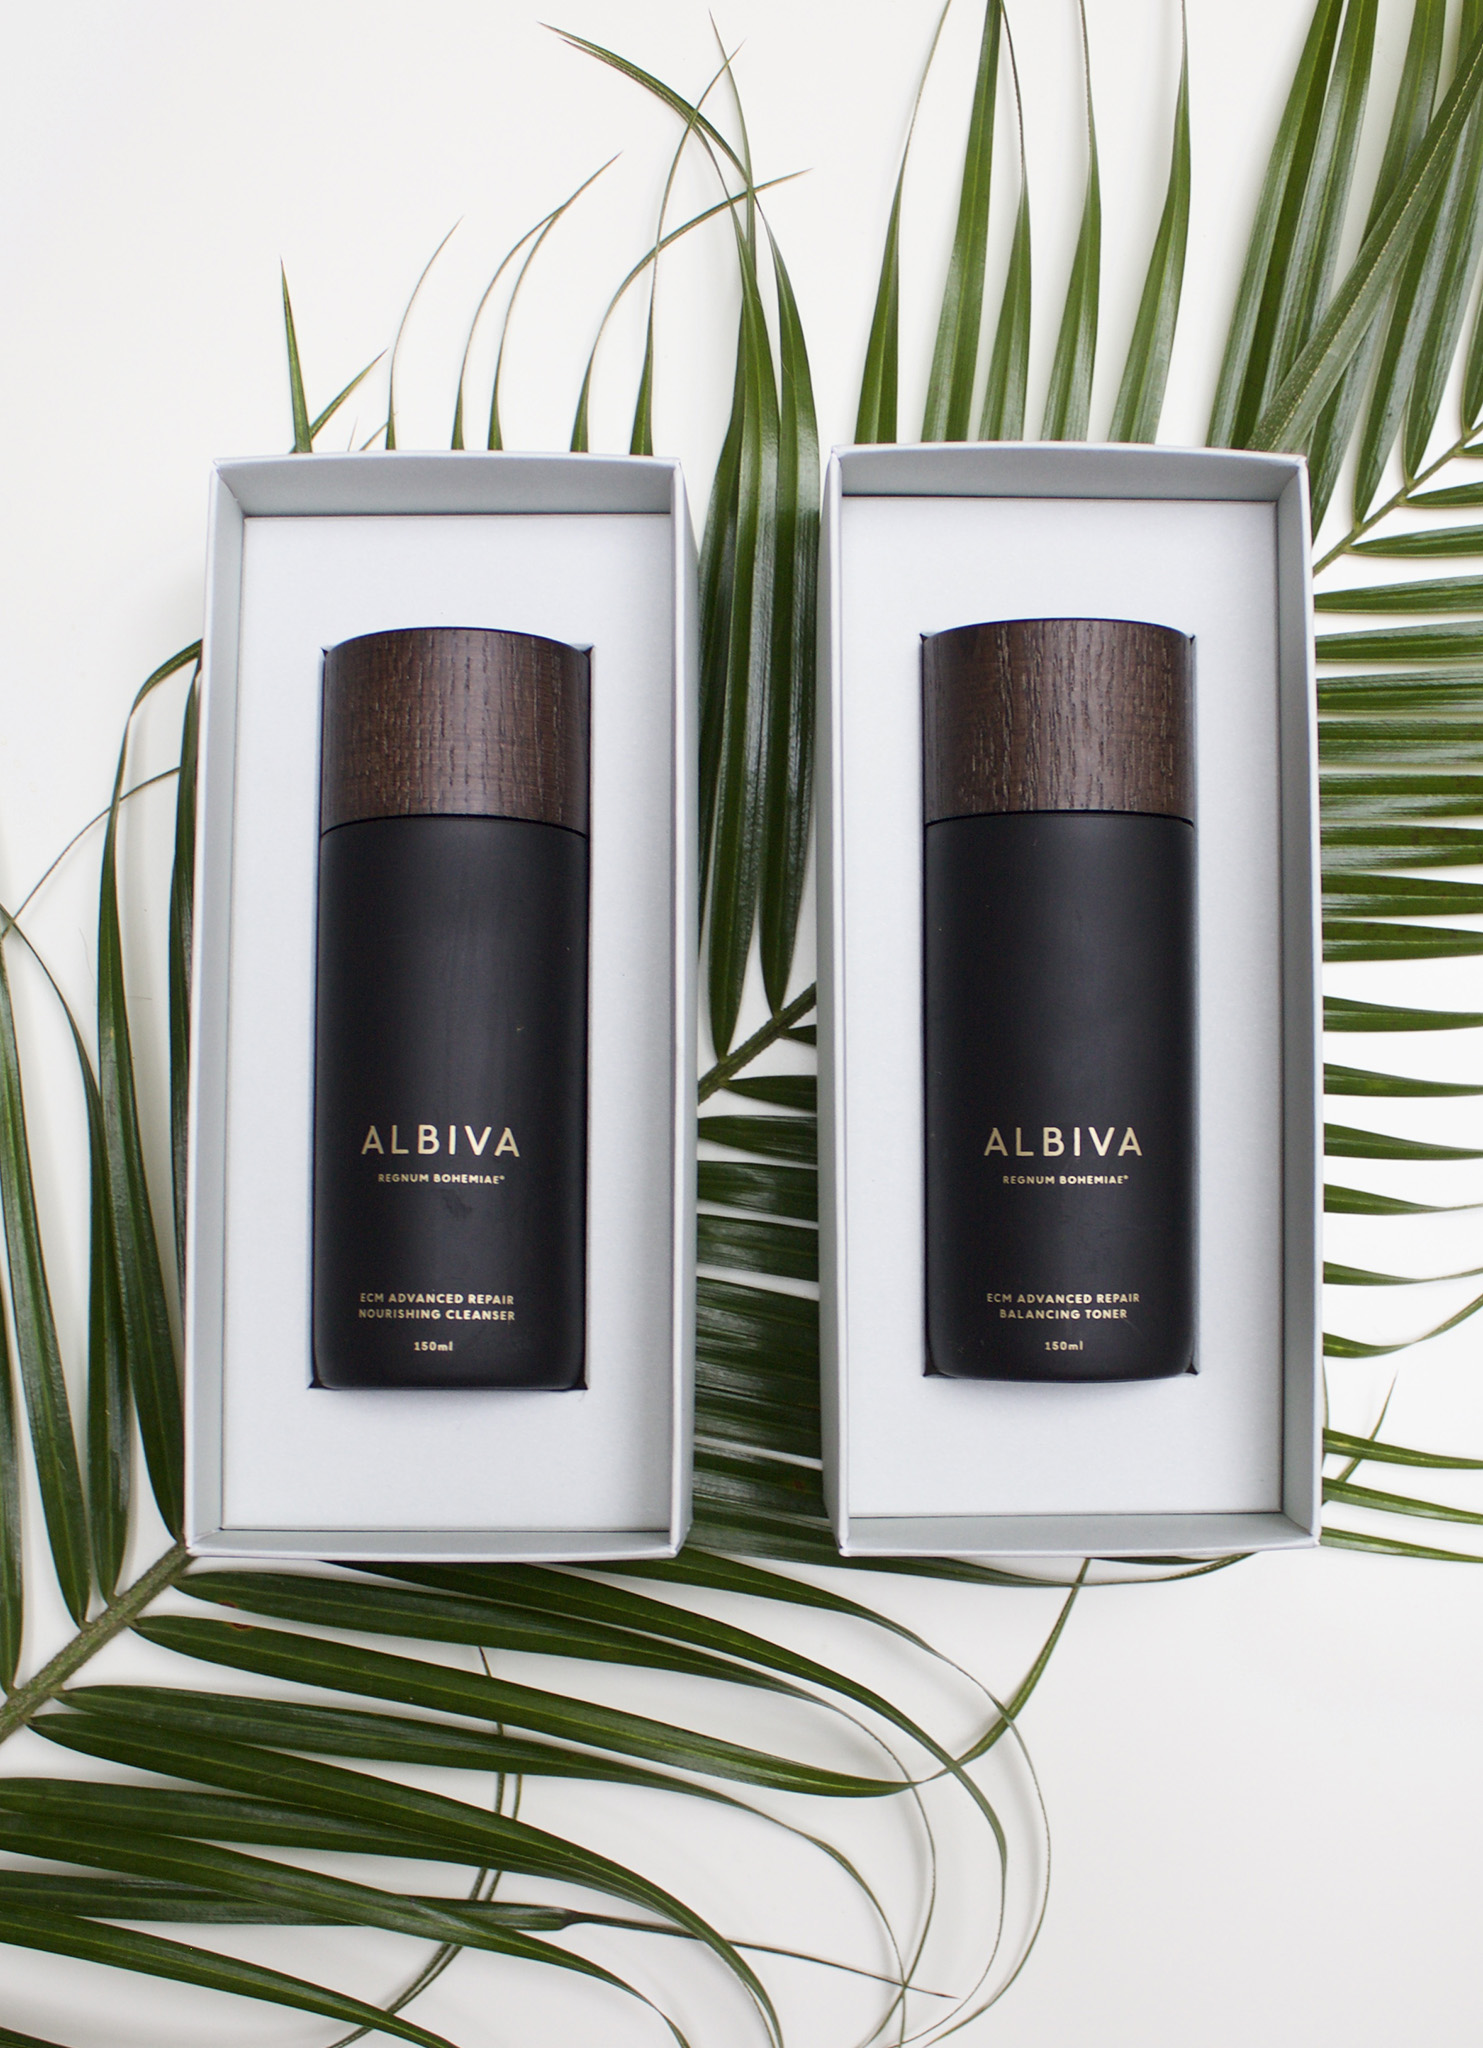 Albiva Featured Product images